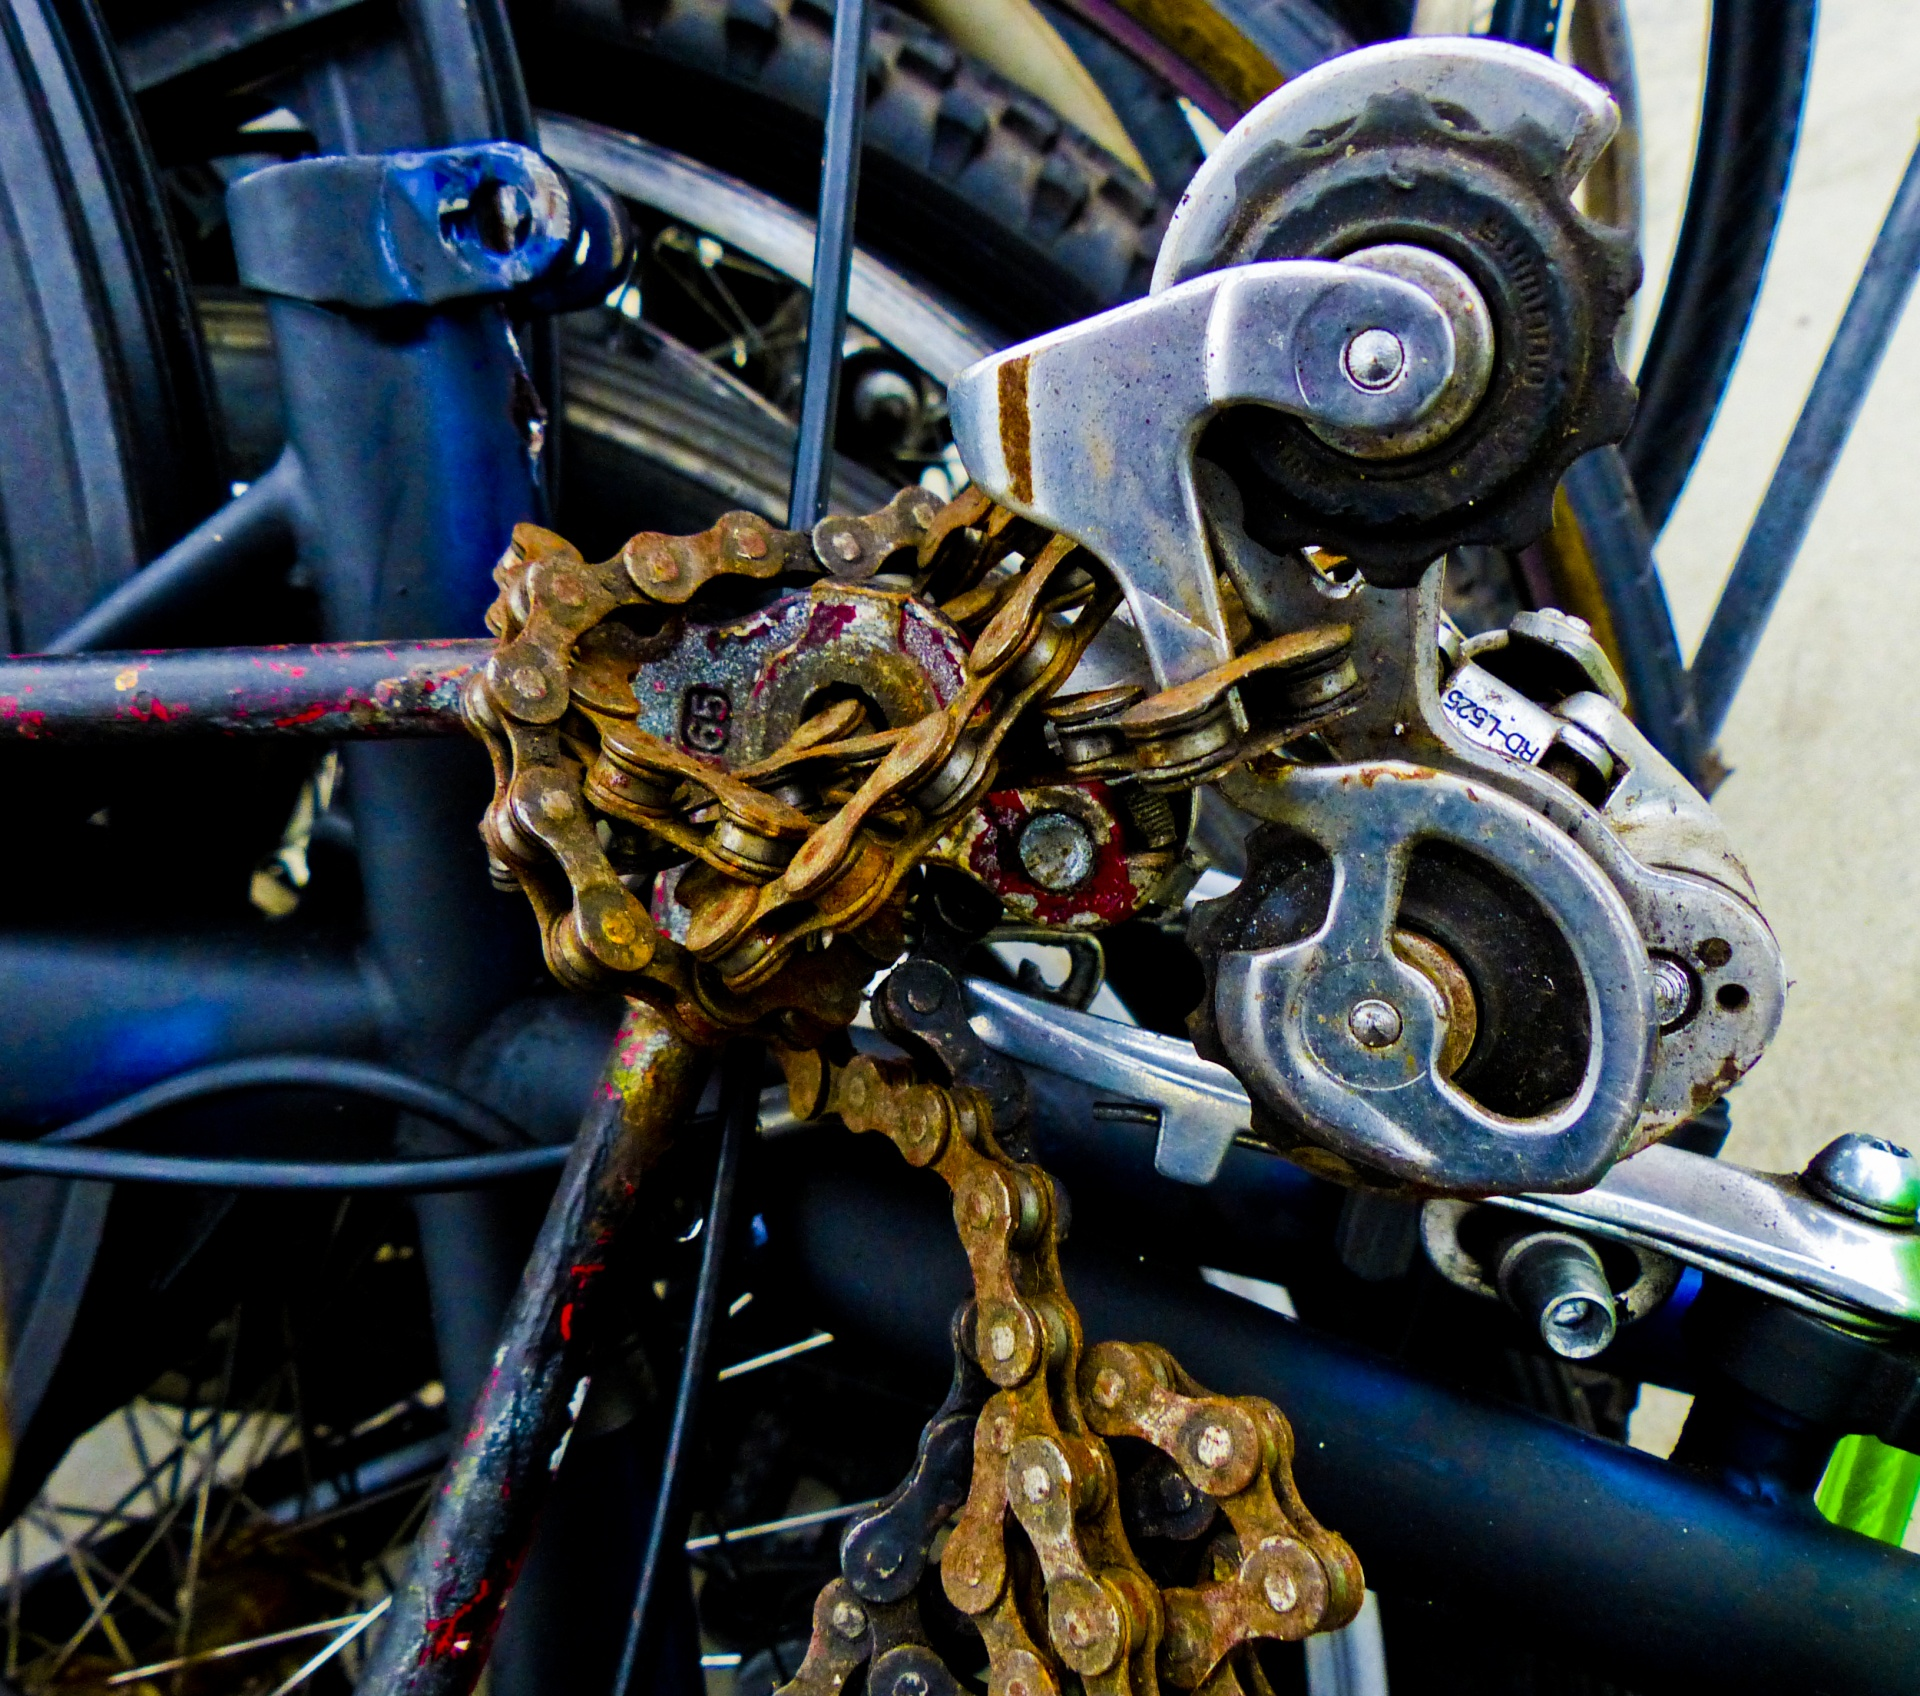 Urban Art Bicycle Chain Bike Parts Old Bicycle Parts Piled Up Free